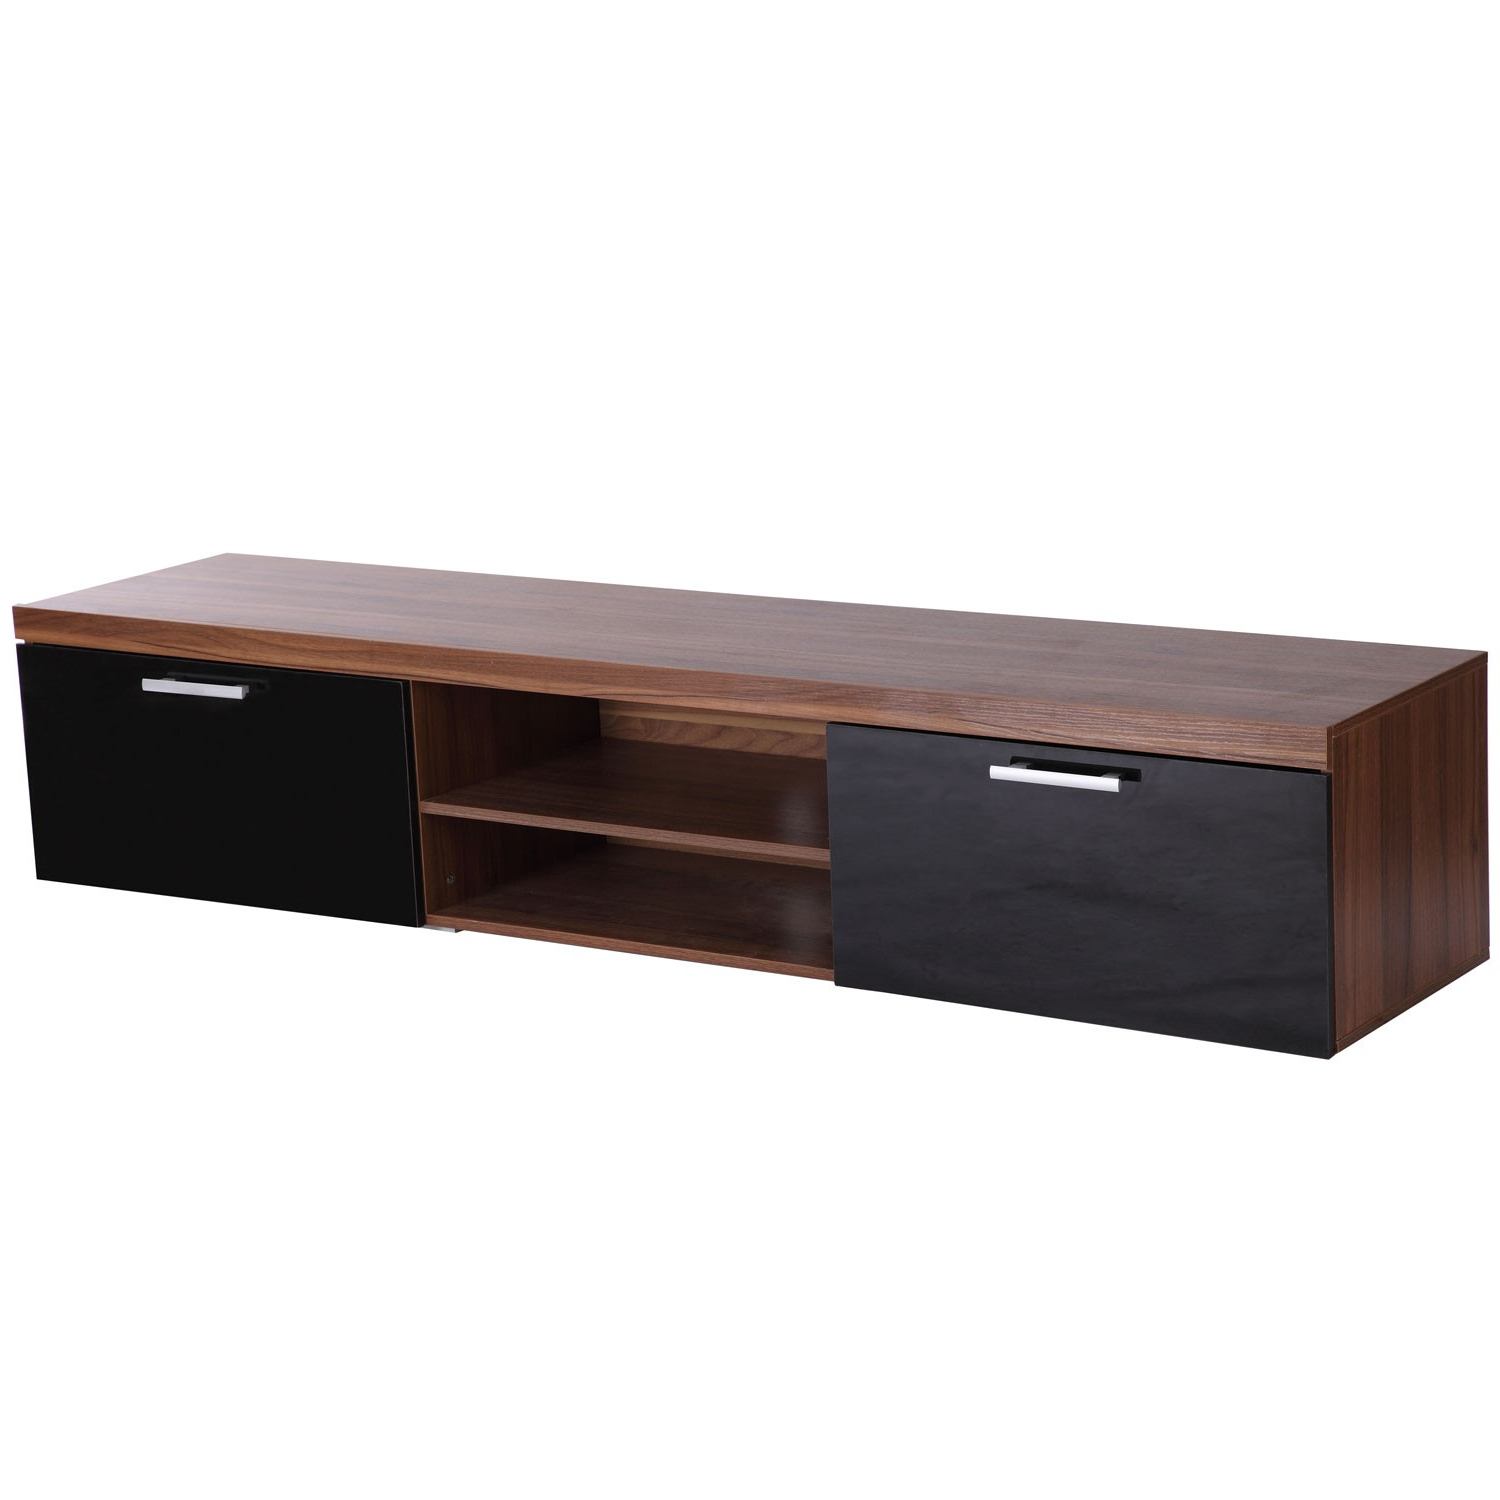 Favorite Homcom Tv Cabinet Unit, 2 High Gloss Doors Black/walnut With Regard To Walnut Tv Cabinets With Doors (View 2 of 20)